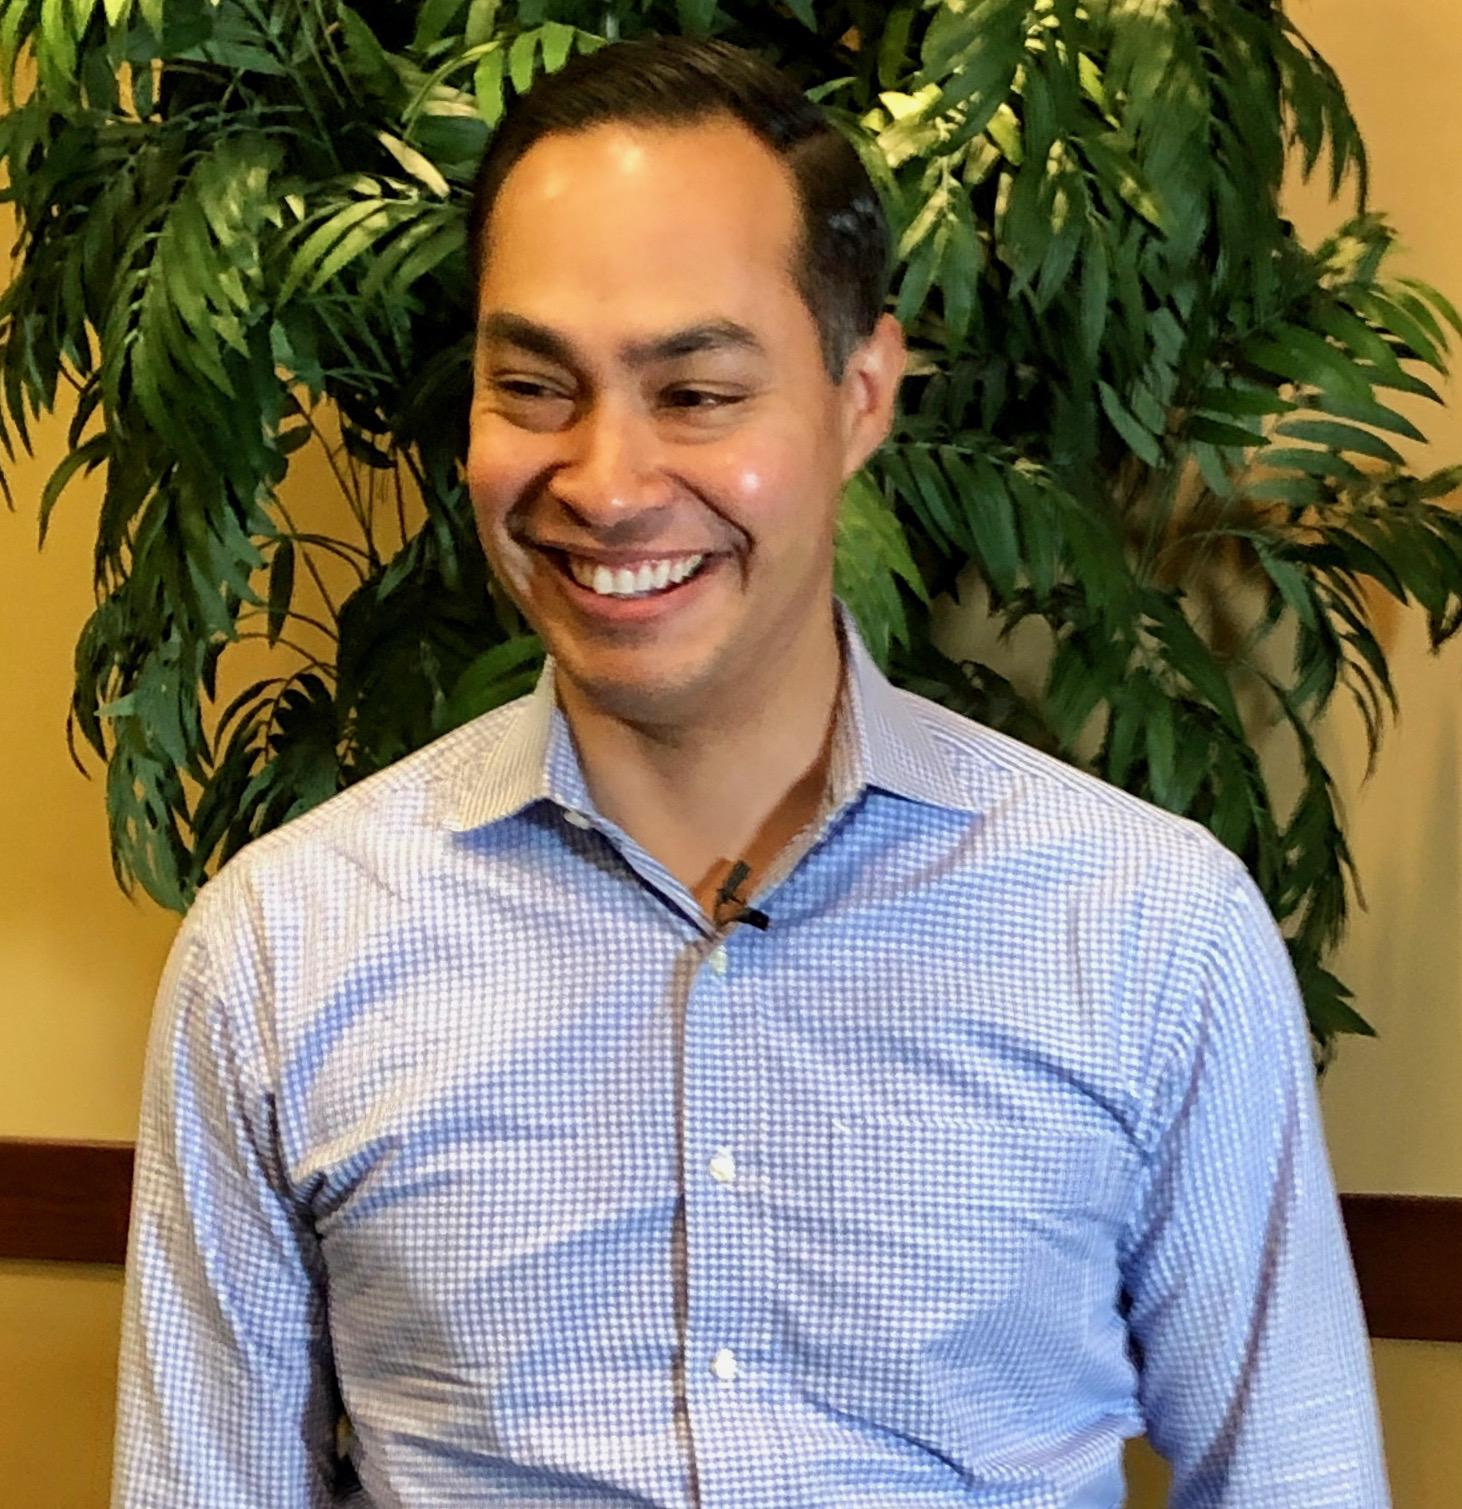 Boise Calendar February 2019 Julián Castro Comes To Boise As First 2020 Presidential Candidate